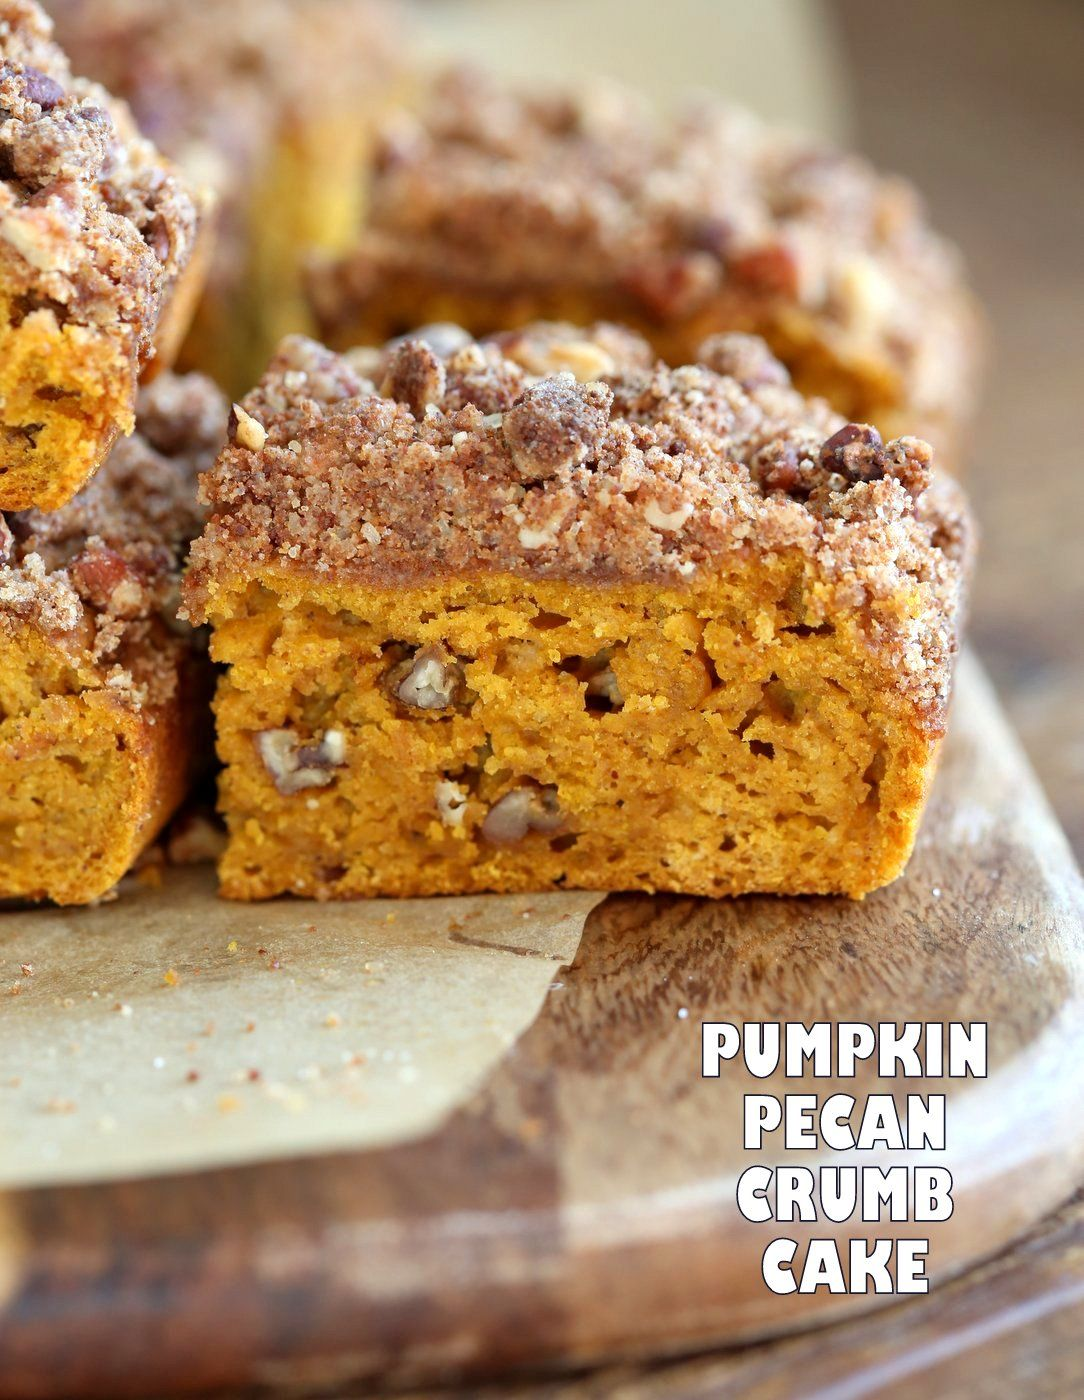 Vegan Pumpkin Coffee Cake With Pecan Crumb Easy 1 Bowl Pumpkin Cake Topped With Chai Spice Pecan Streuse Pumpkin Coffee Cakes Vegan Sweets Vegan Cake Recipes